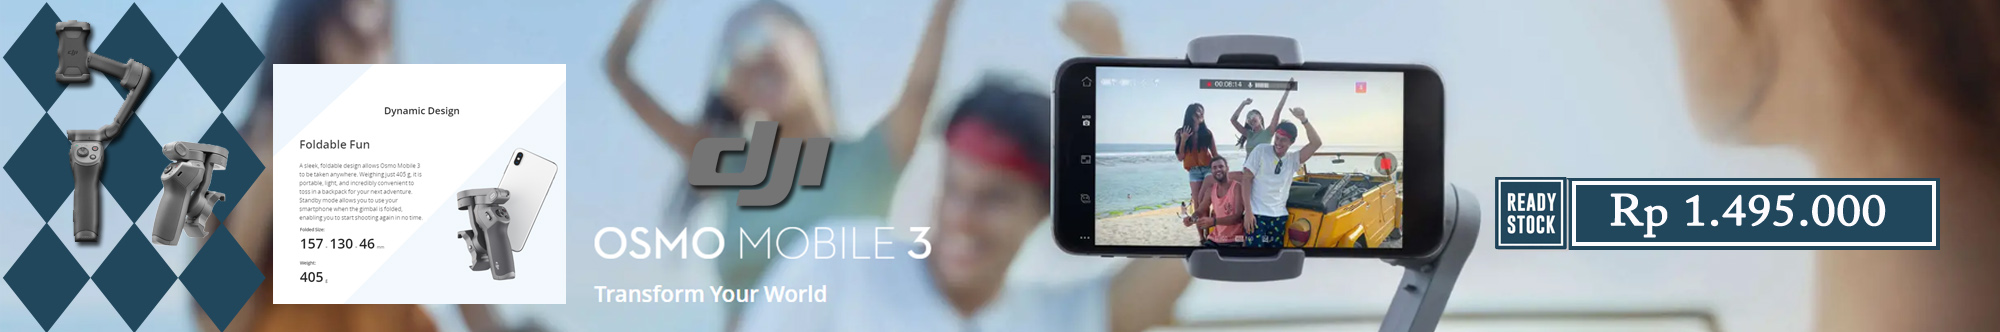 DJI Osmo Mobile 3 Standard // Upload 16 Nov 2019